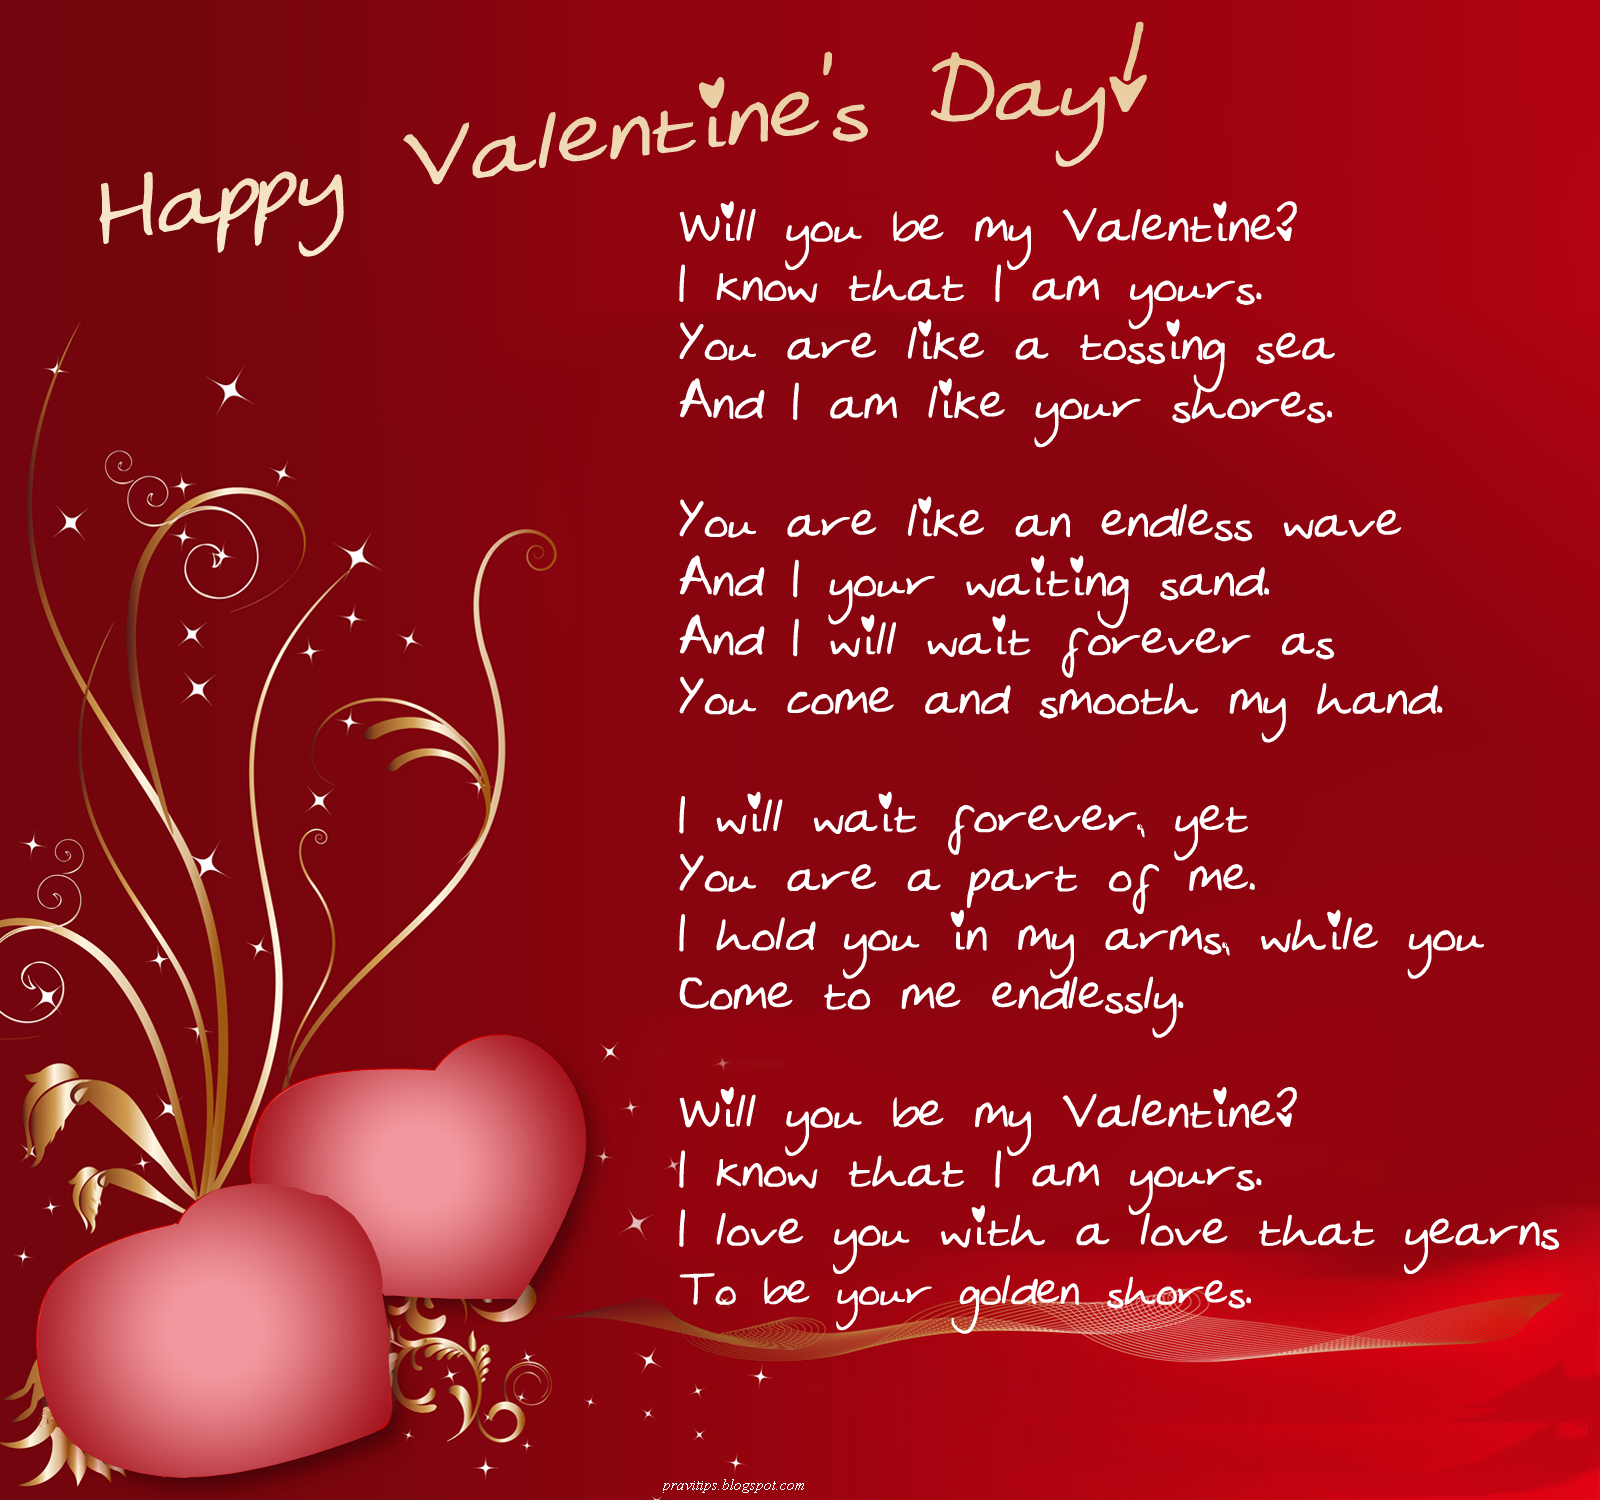 Valentines Greeting Cards 2012